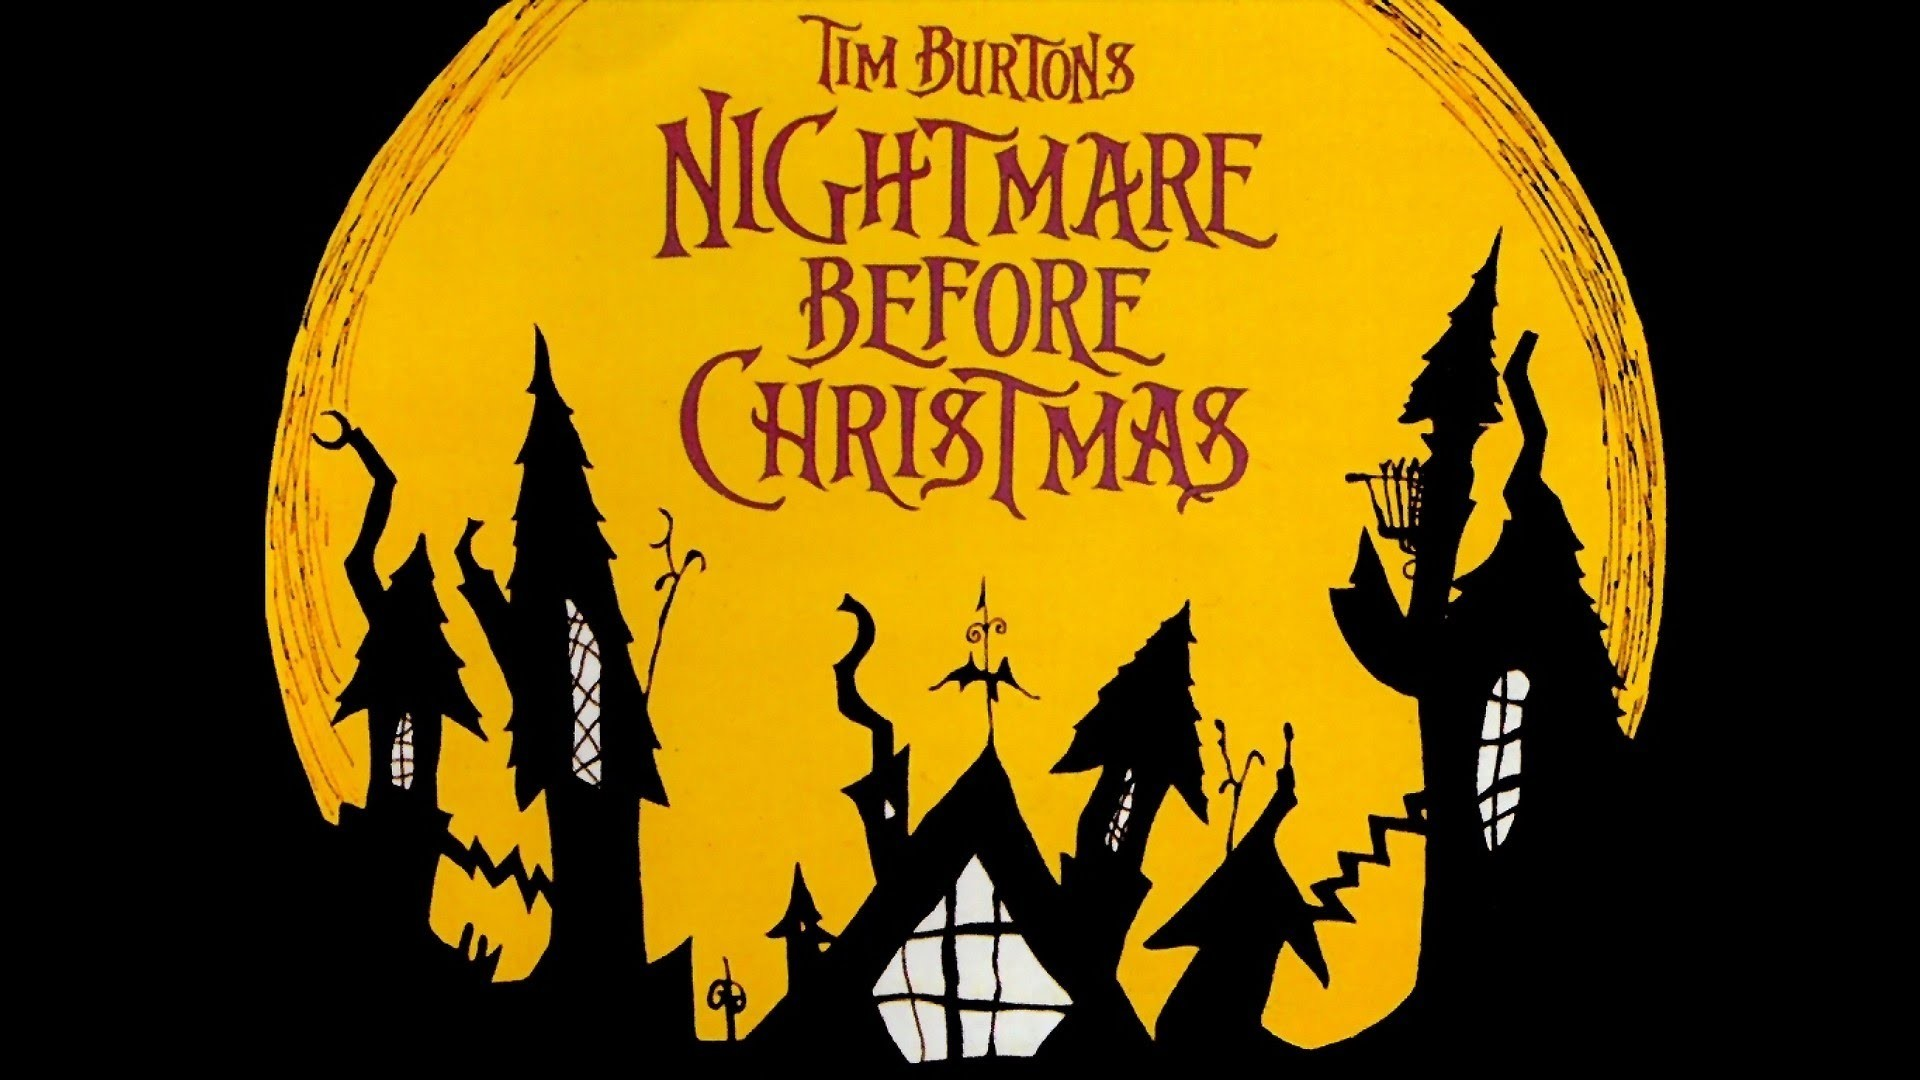 Tim Burton images The Nightmare Before Christmas wallpaper and .